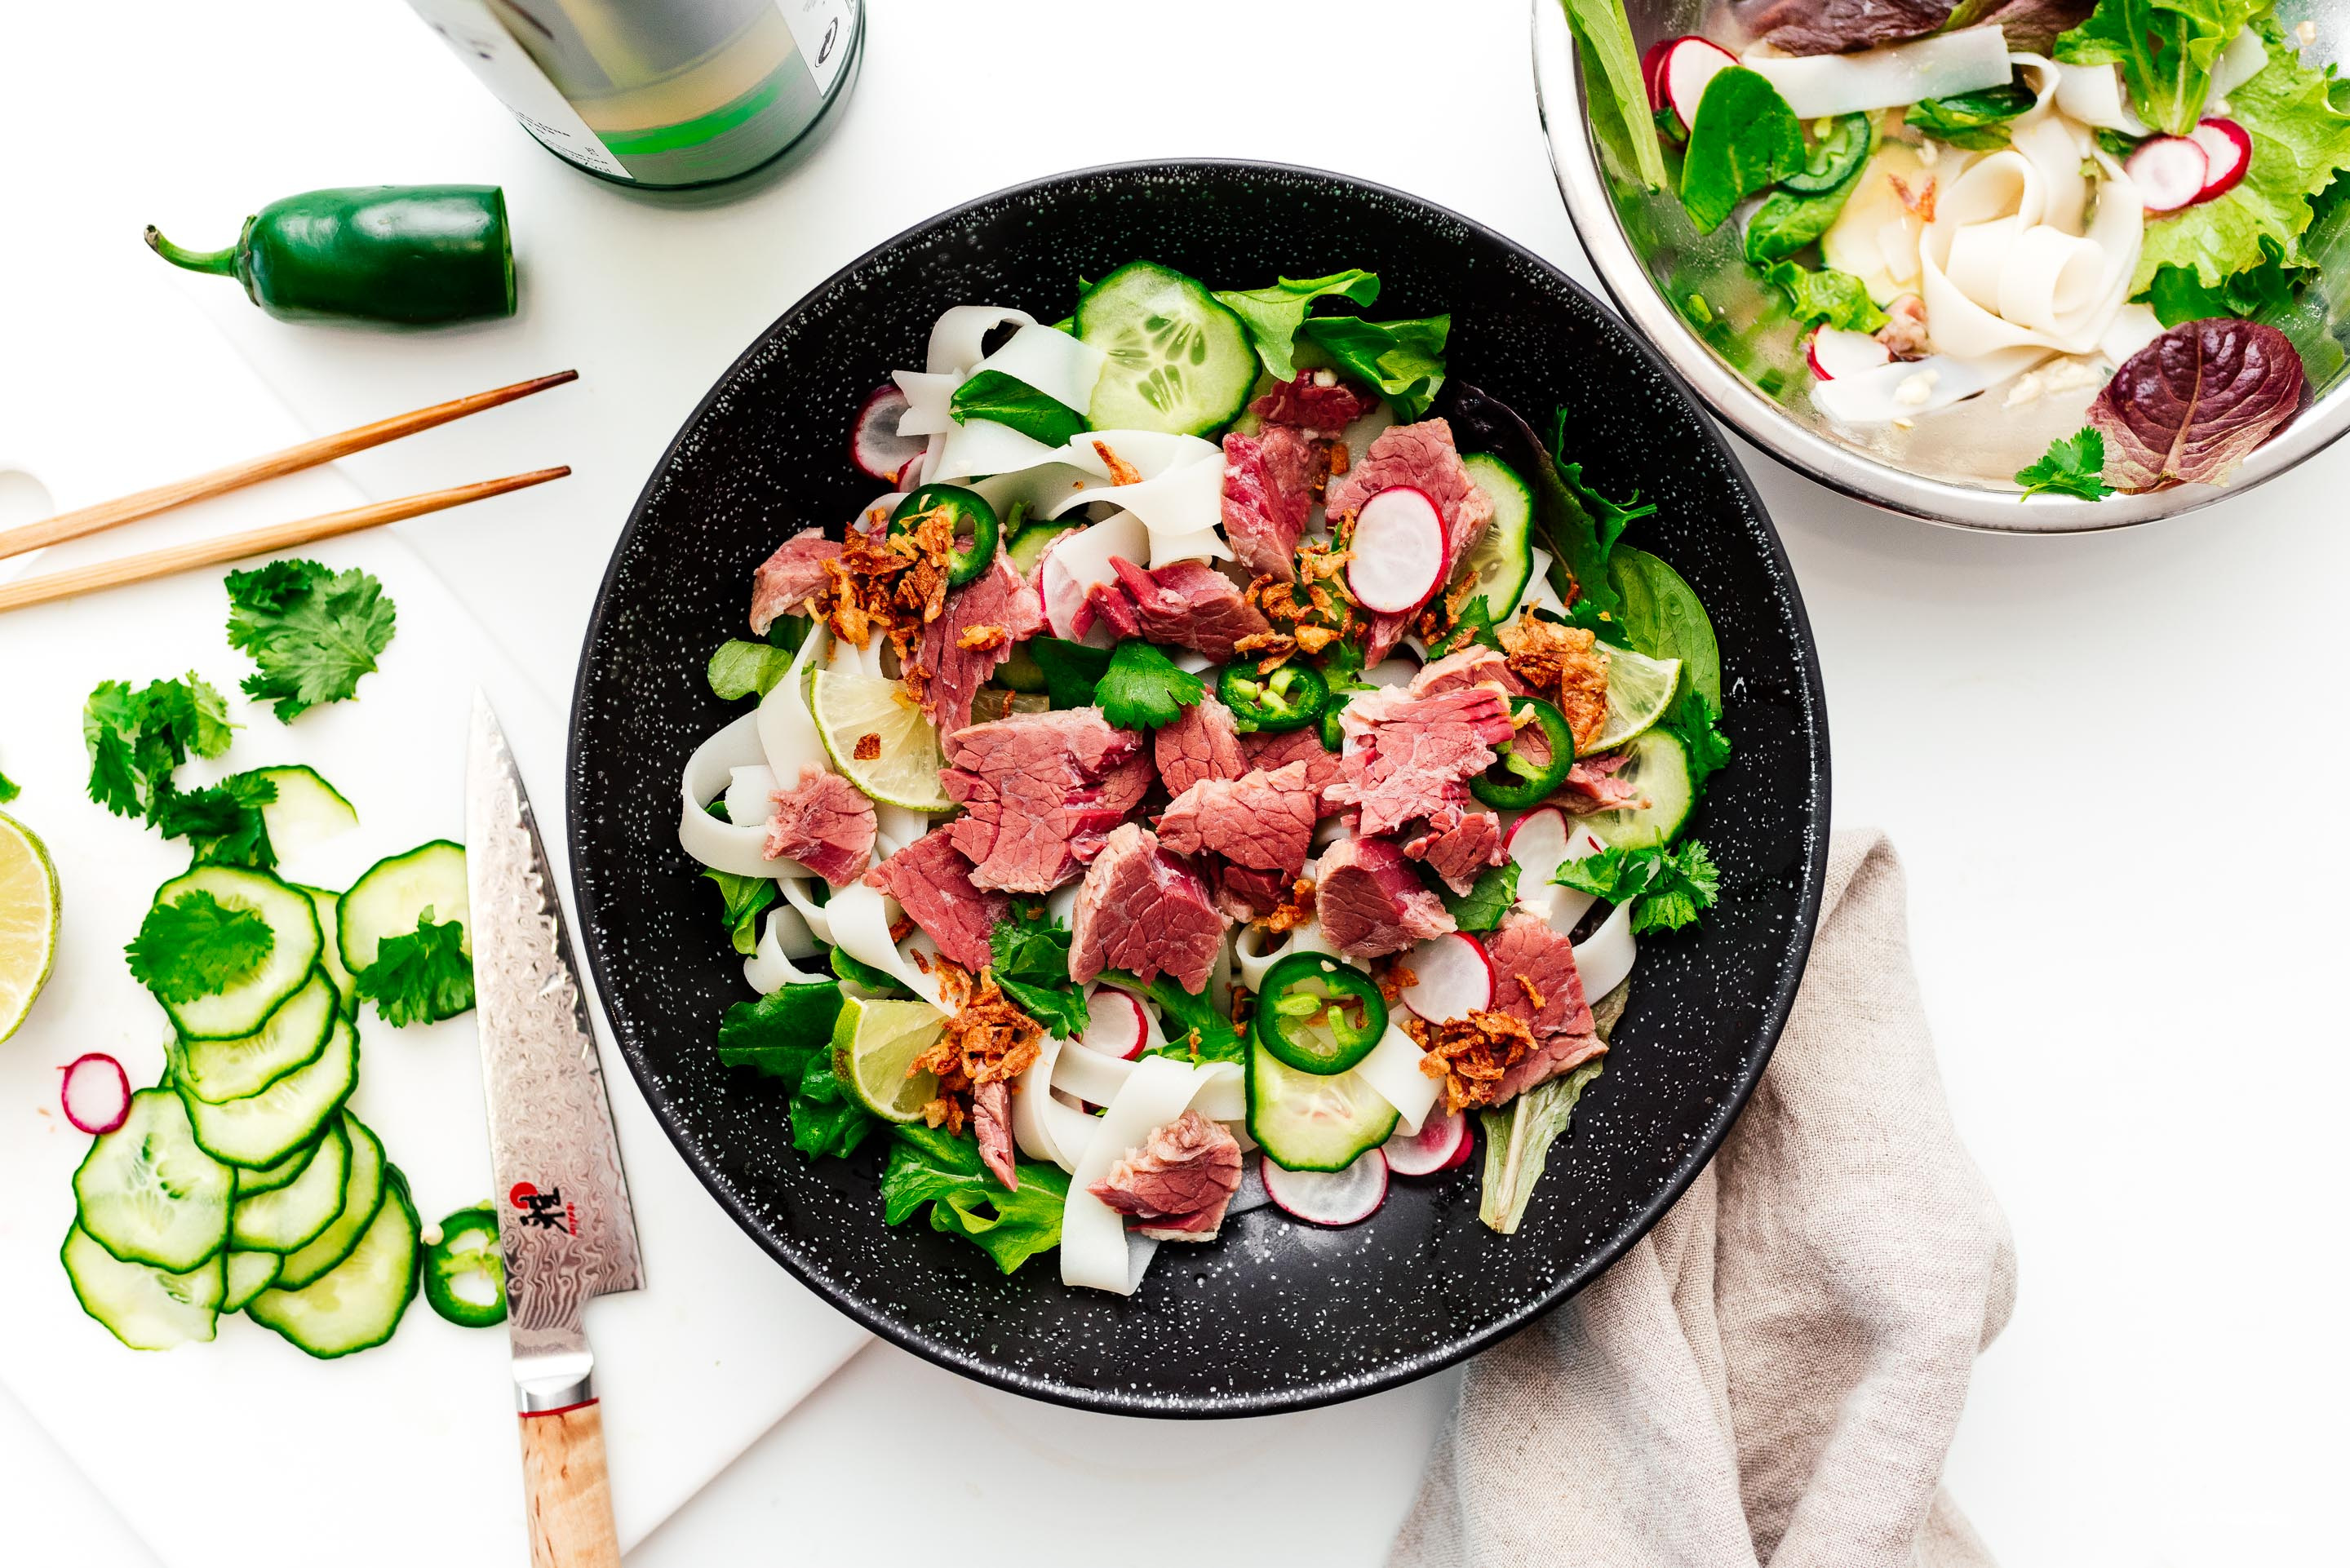 Pho-strami: A Pho-Forward Take on Pastrami